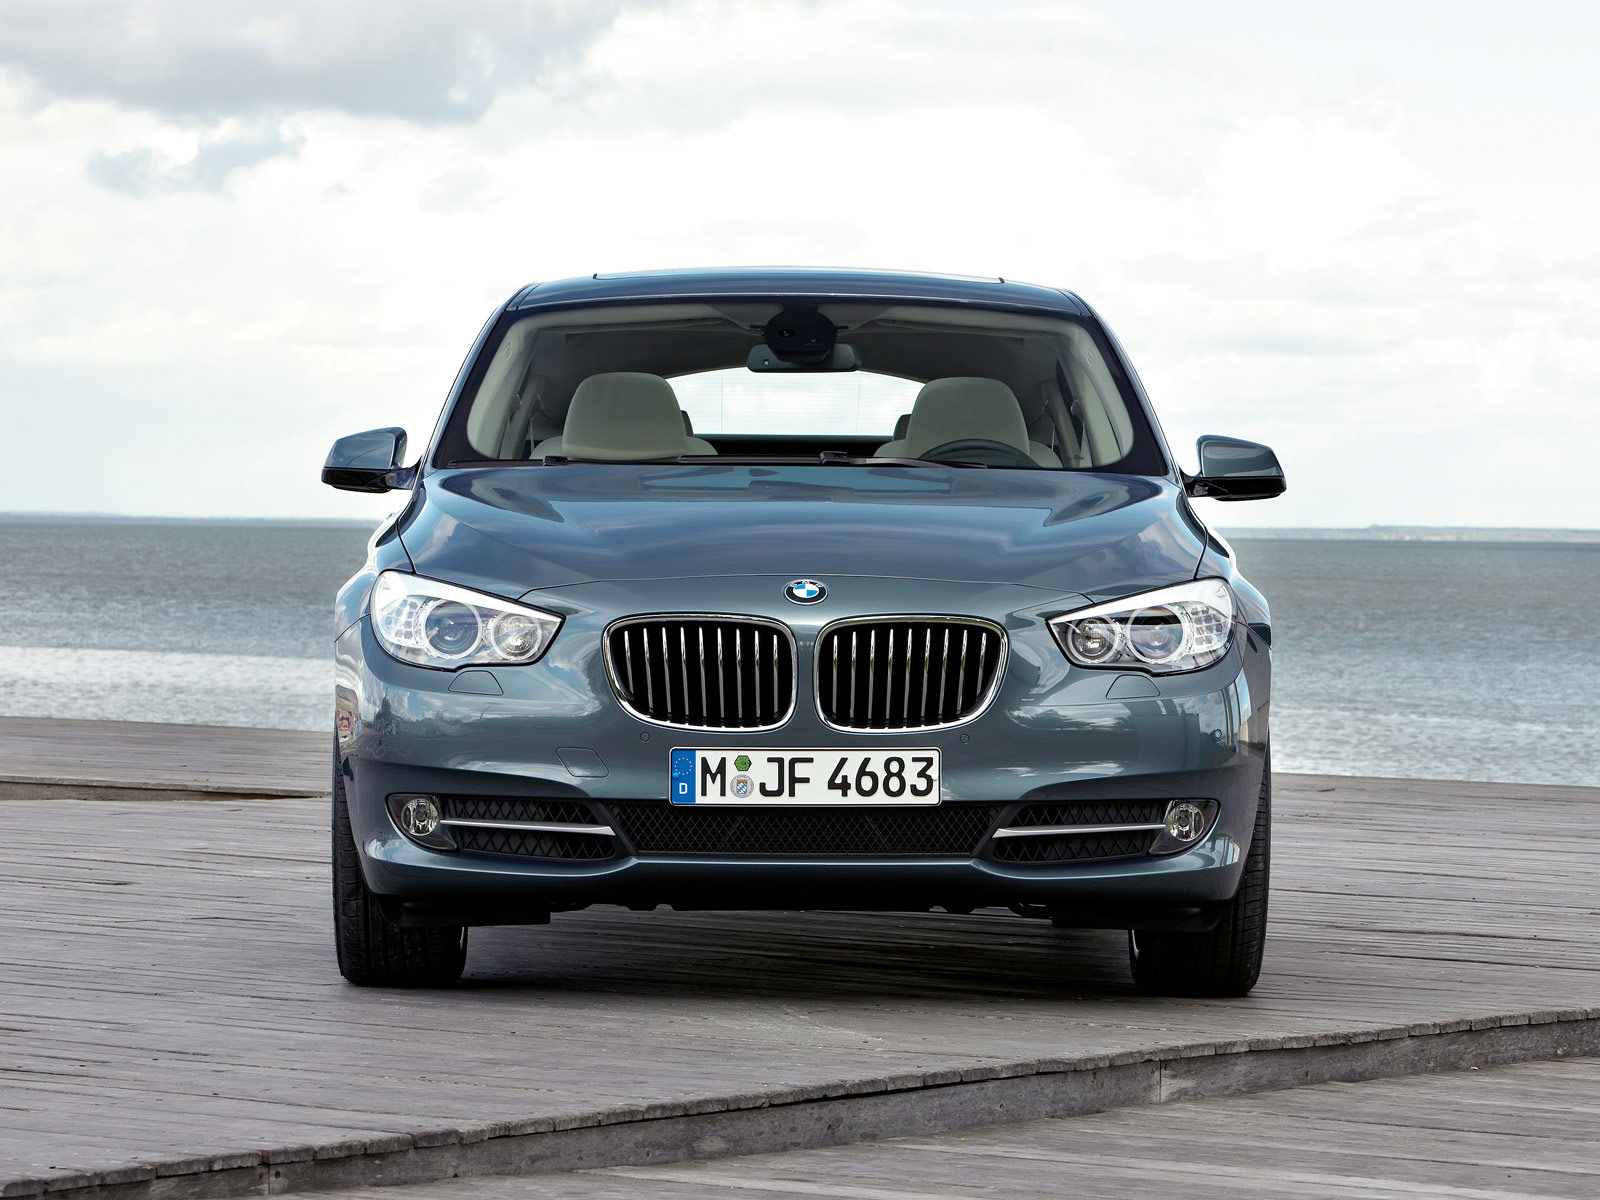 BMW 5 series 525xd 2010 photo - 12